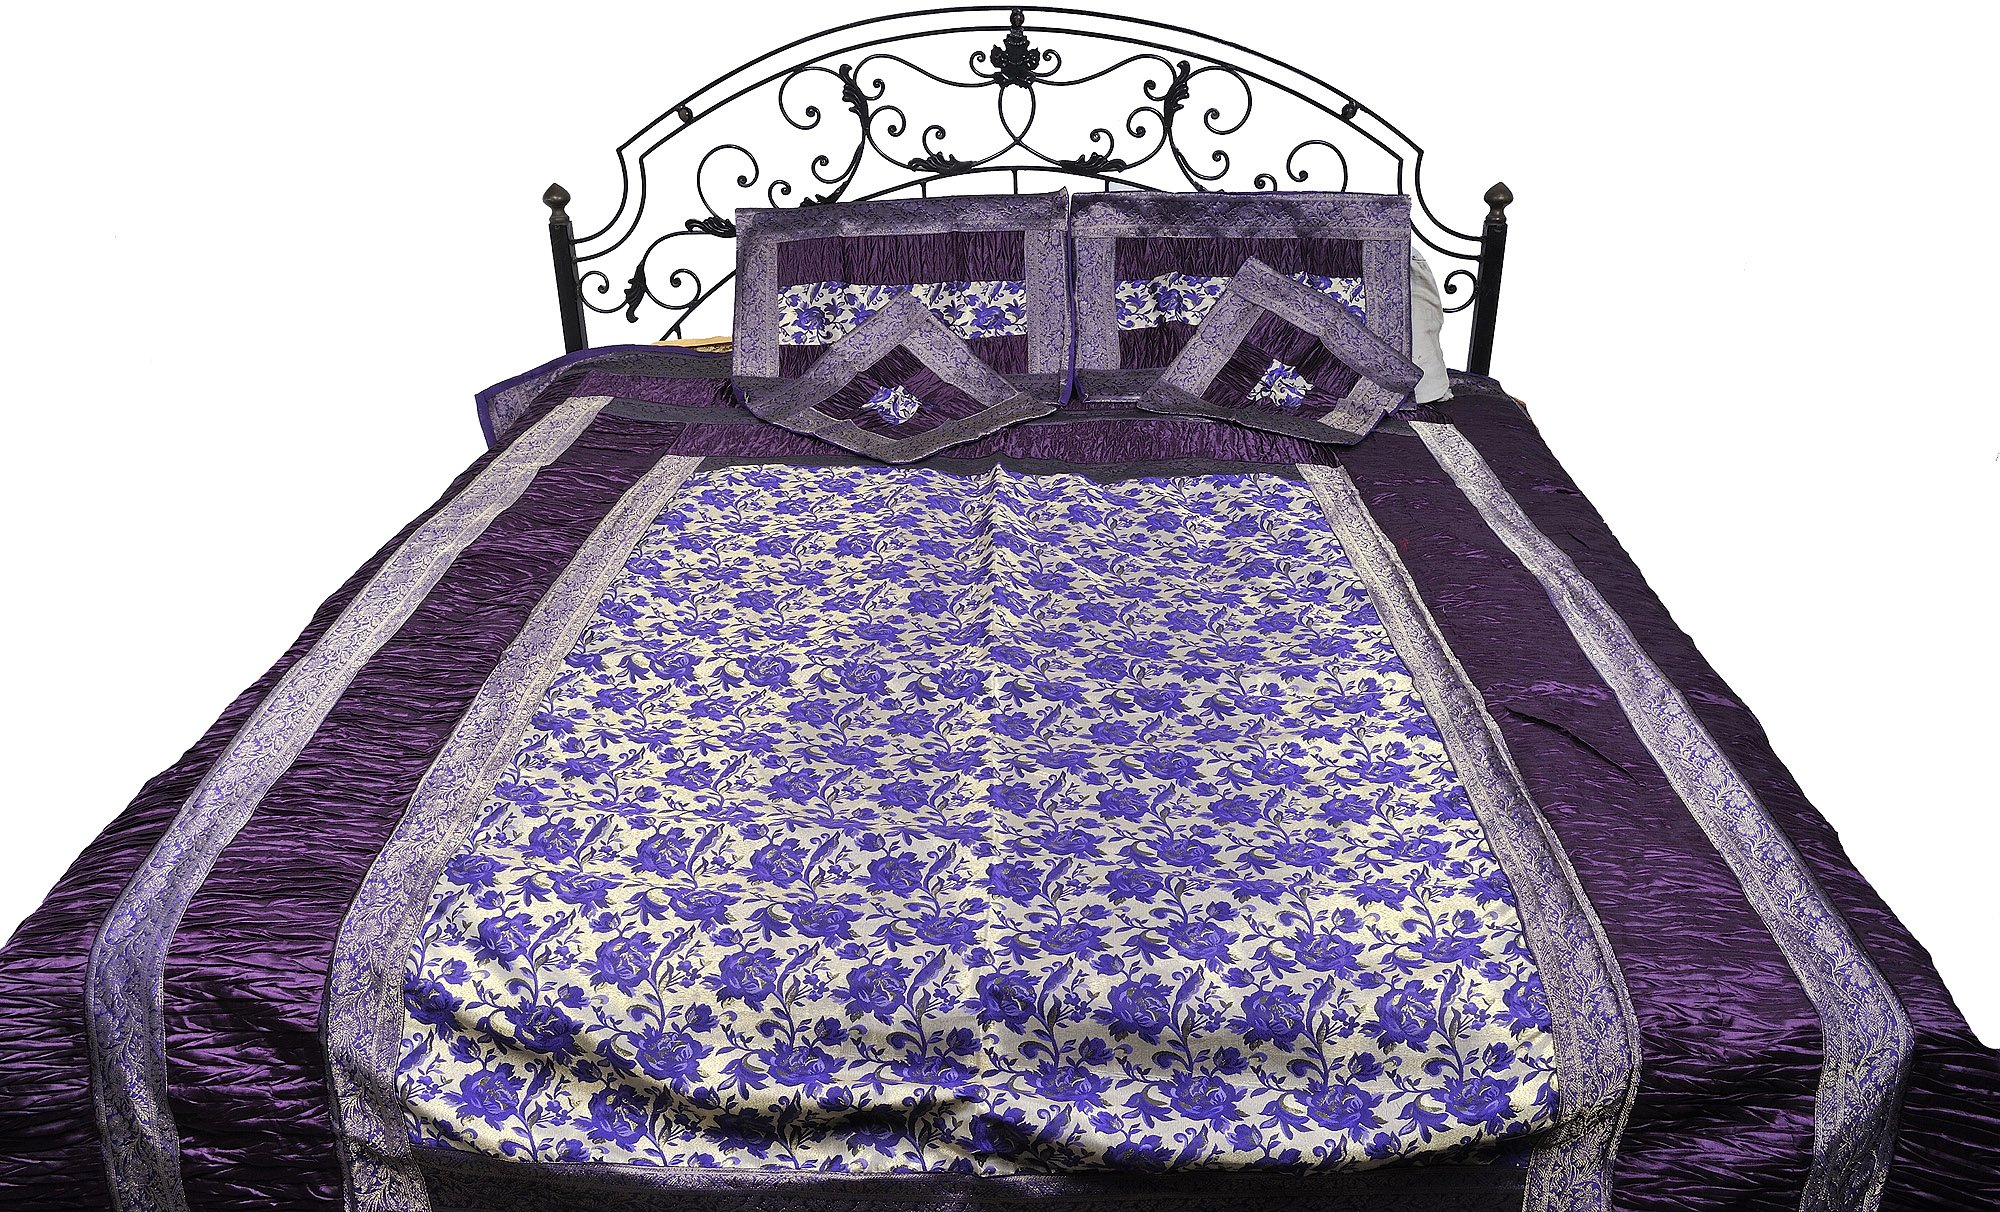 Five-Piece Banarasi Bedspread with Woven Flowers All-Over and Brocaded Border - Art Silk with Pillow - Color Mulberry Purple Color